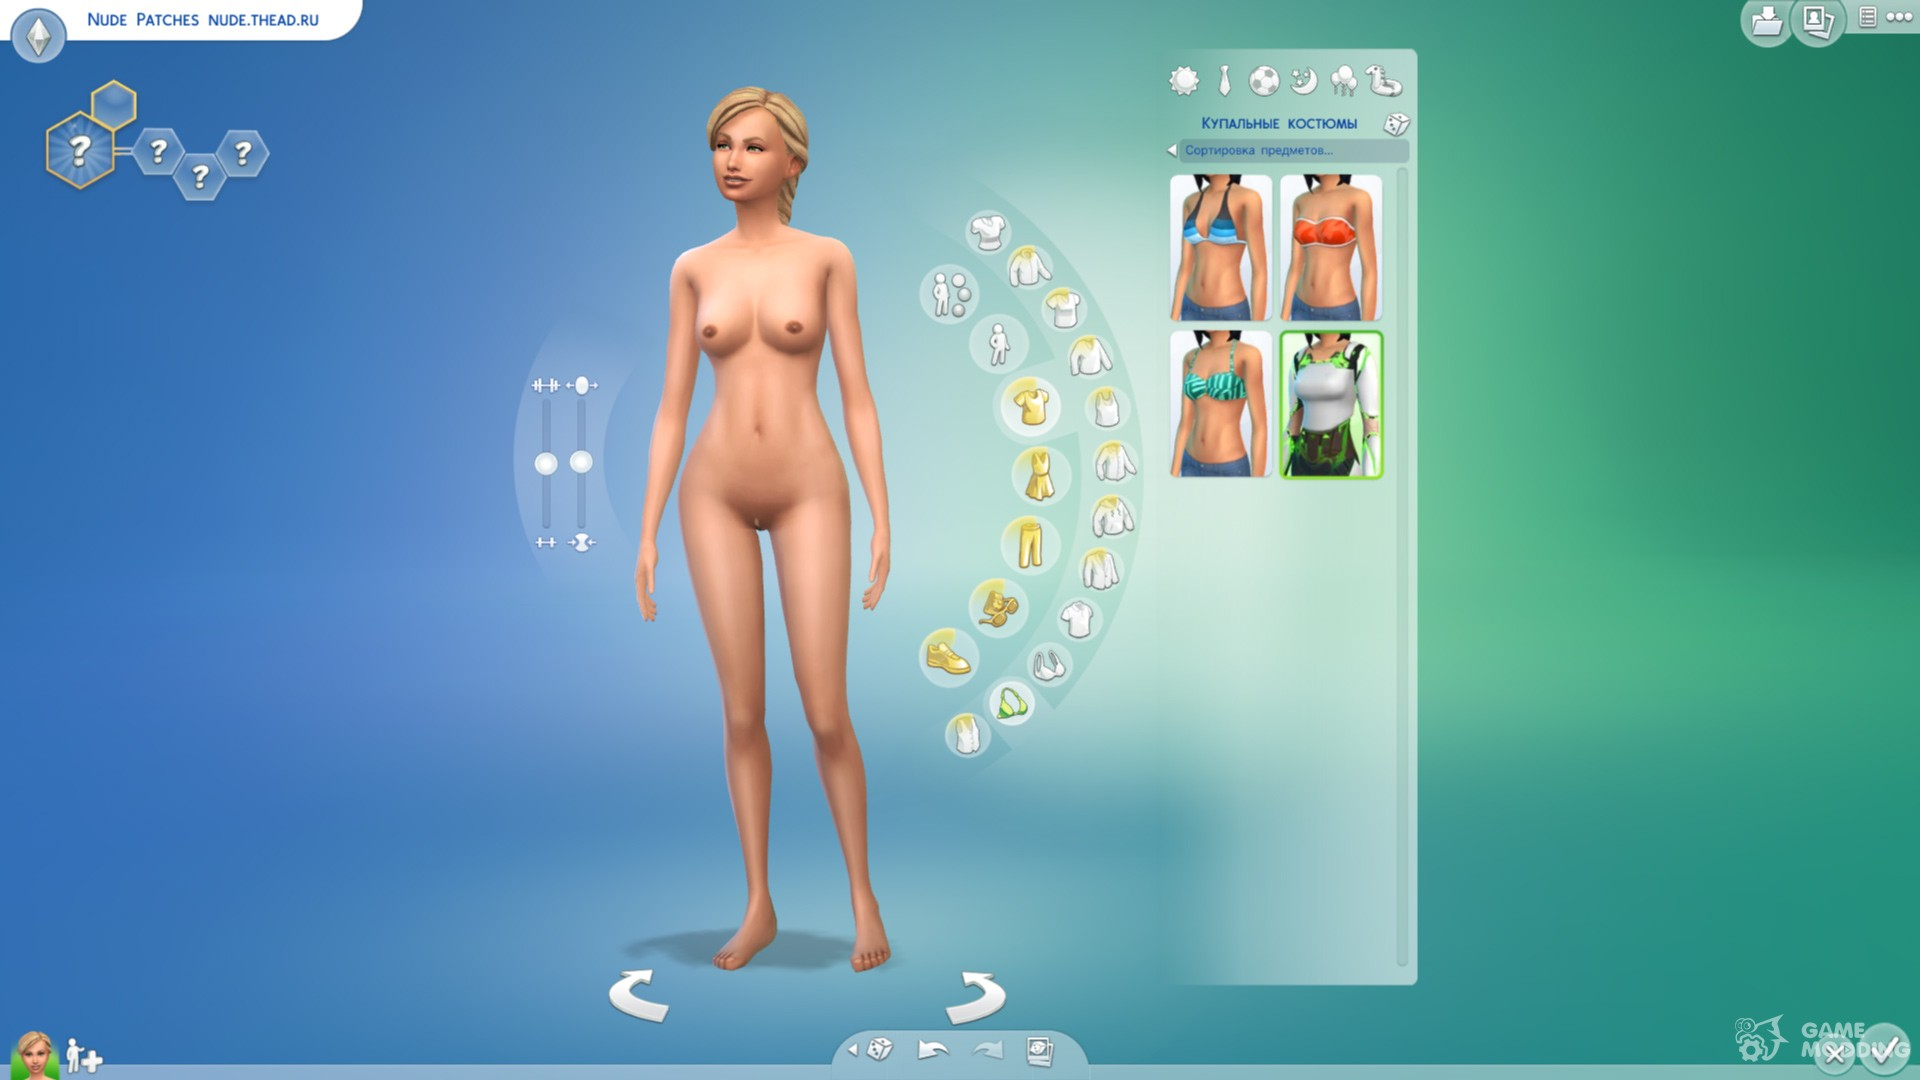 The sims 2 nude sex patch uncensor  porno uncensored lady